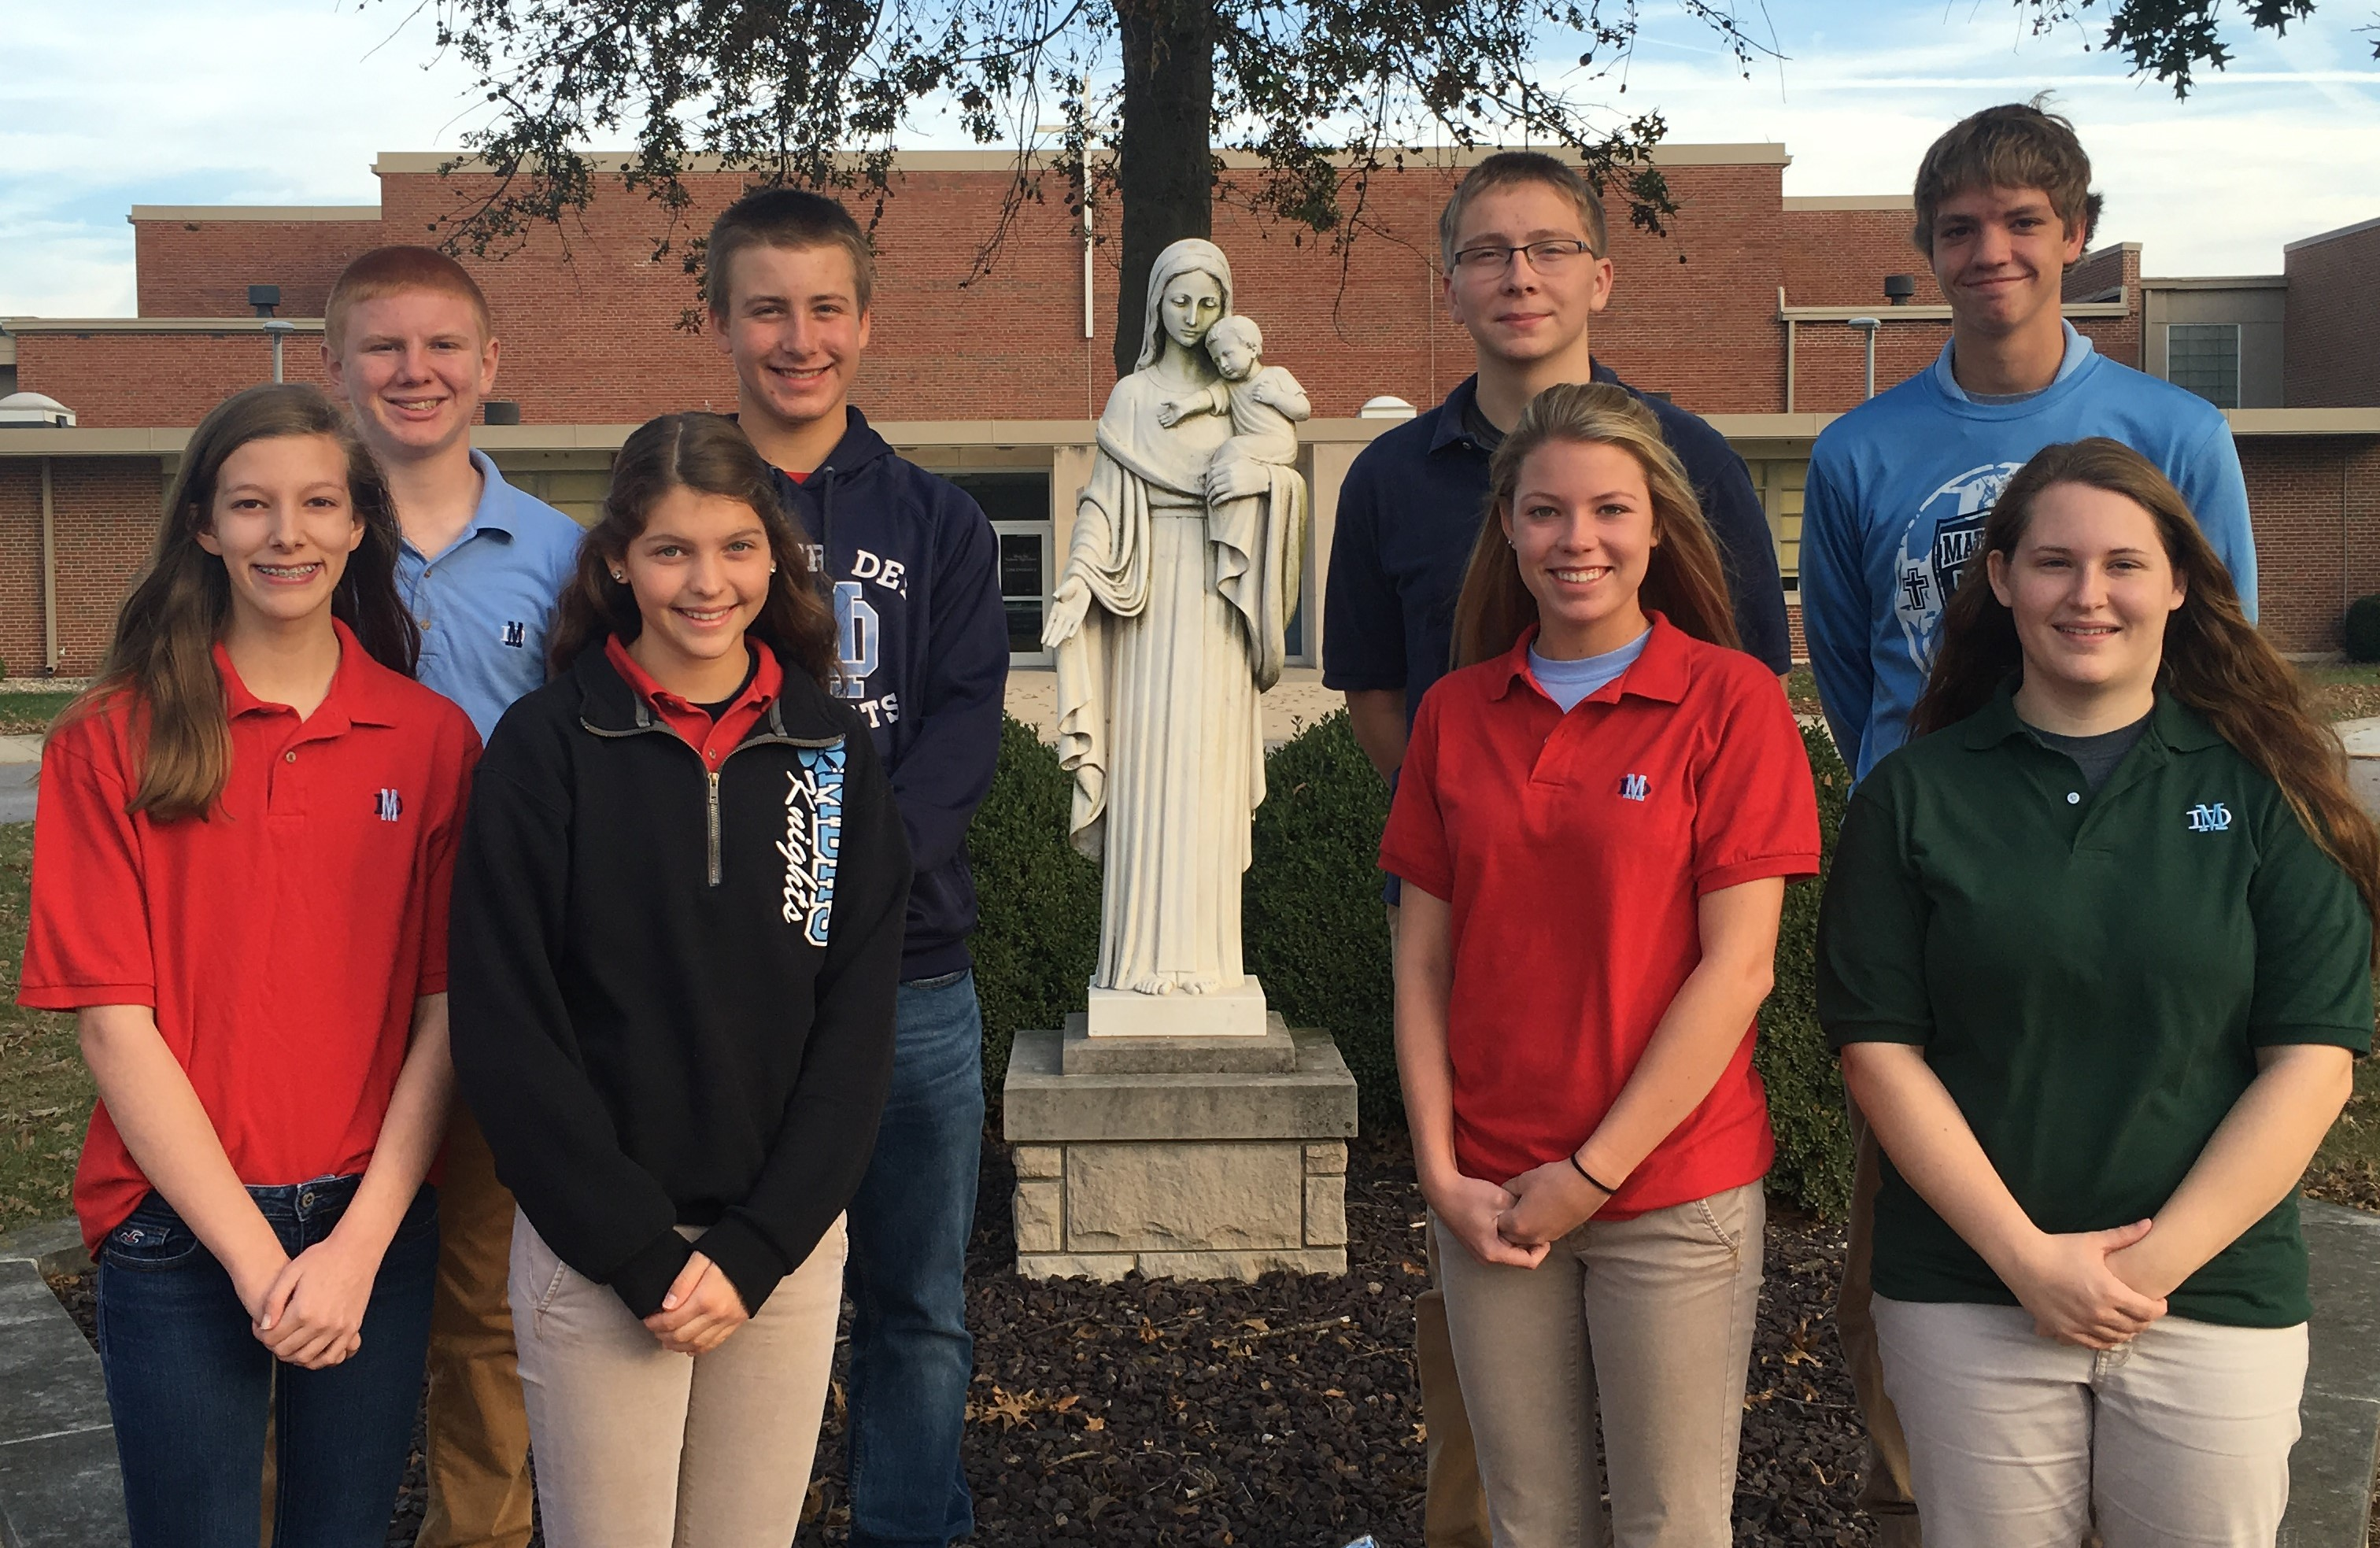 The Students of the Quarter (left to right): freshmen Hannah McSparin and Kyle Billhartz, sophomores Carly Etter and Dennis Trickey, juniors Lauren Kampwerth and Drew Potthast, and seniors Sarah Maller and Logan Albers.